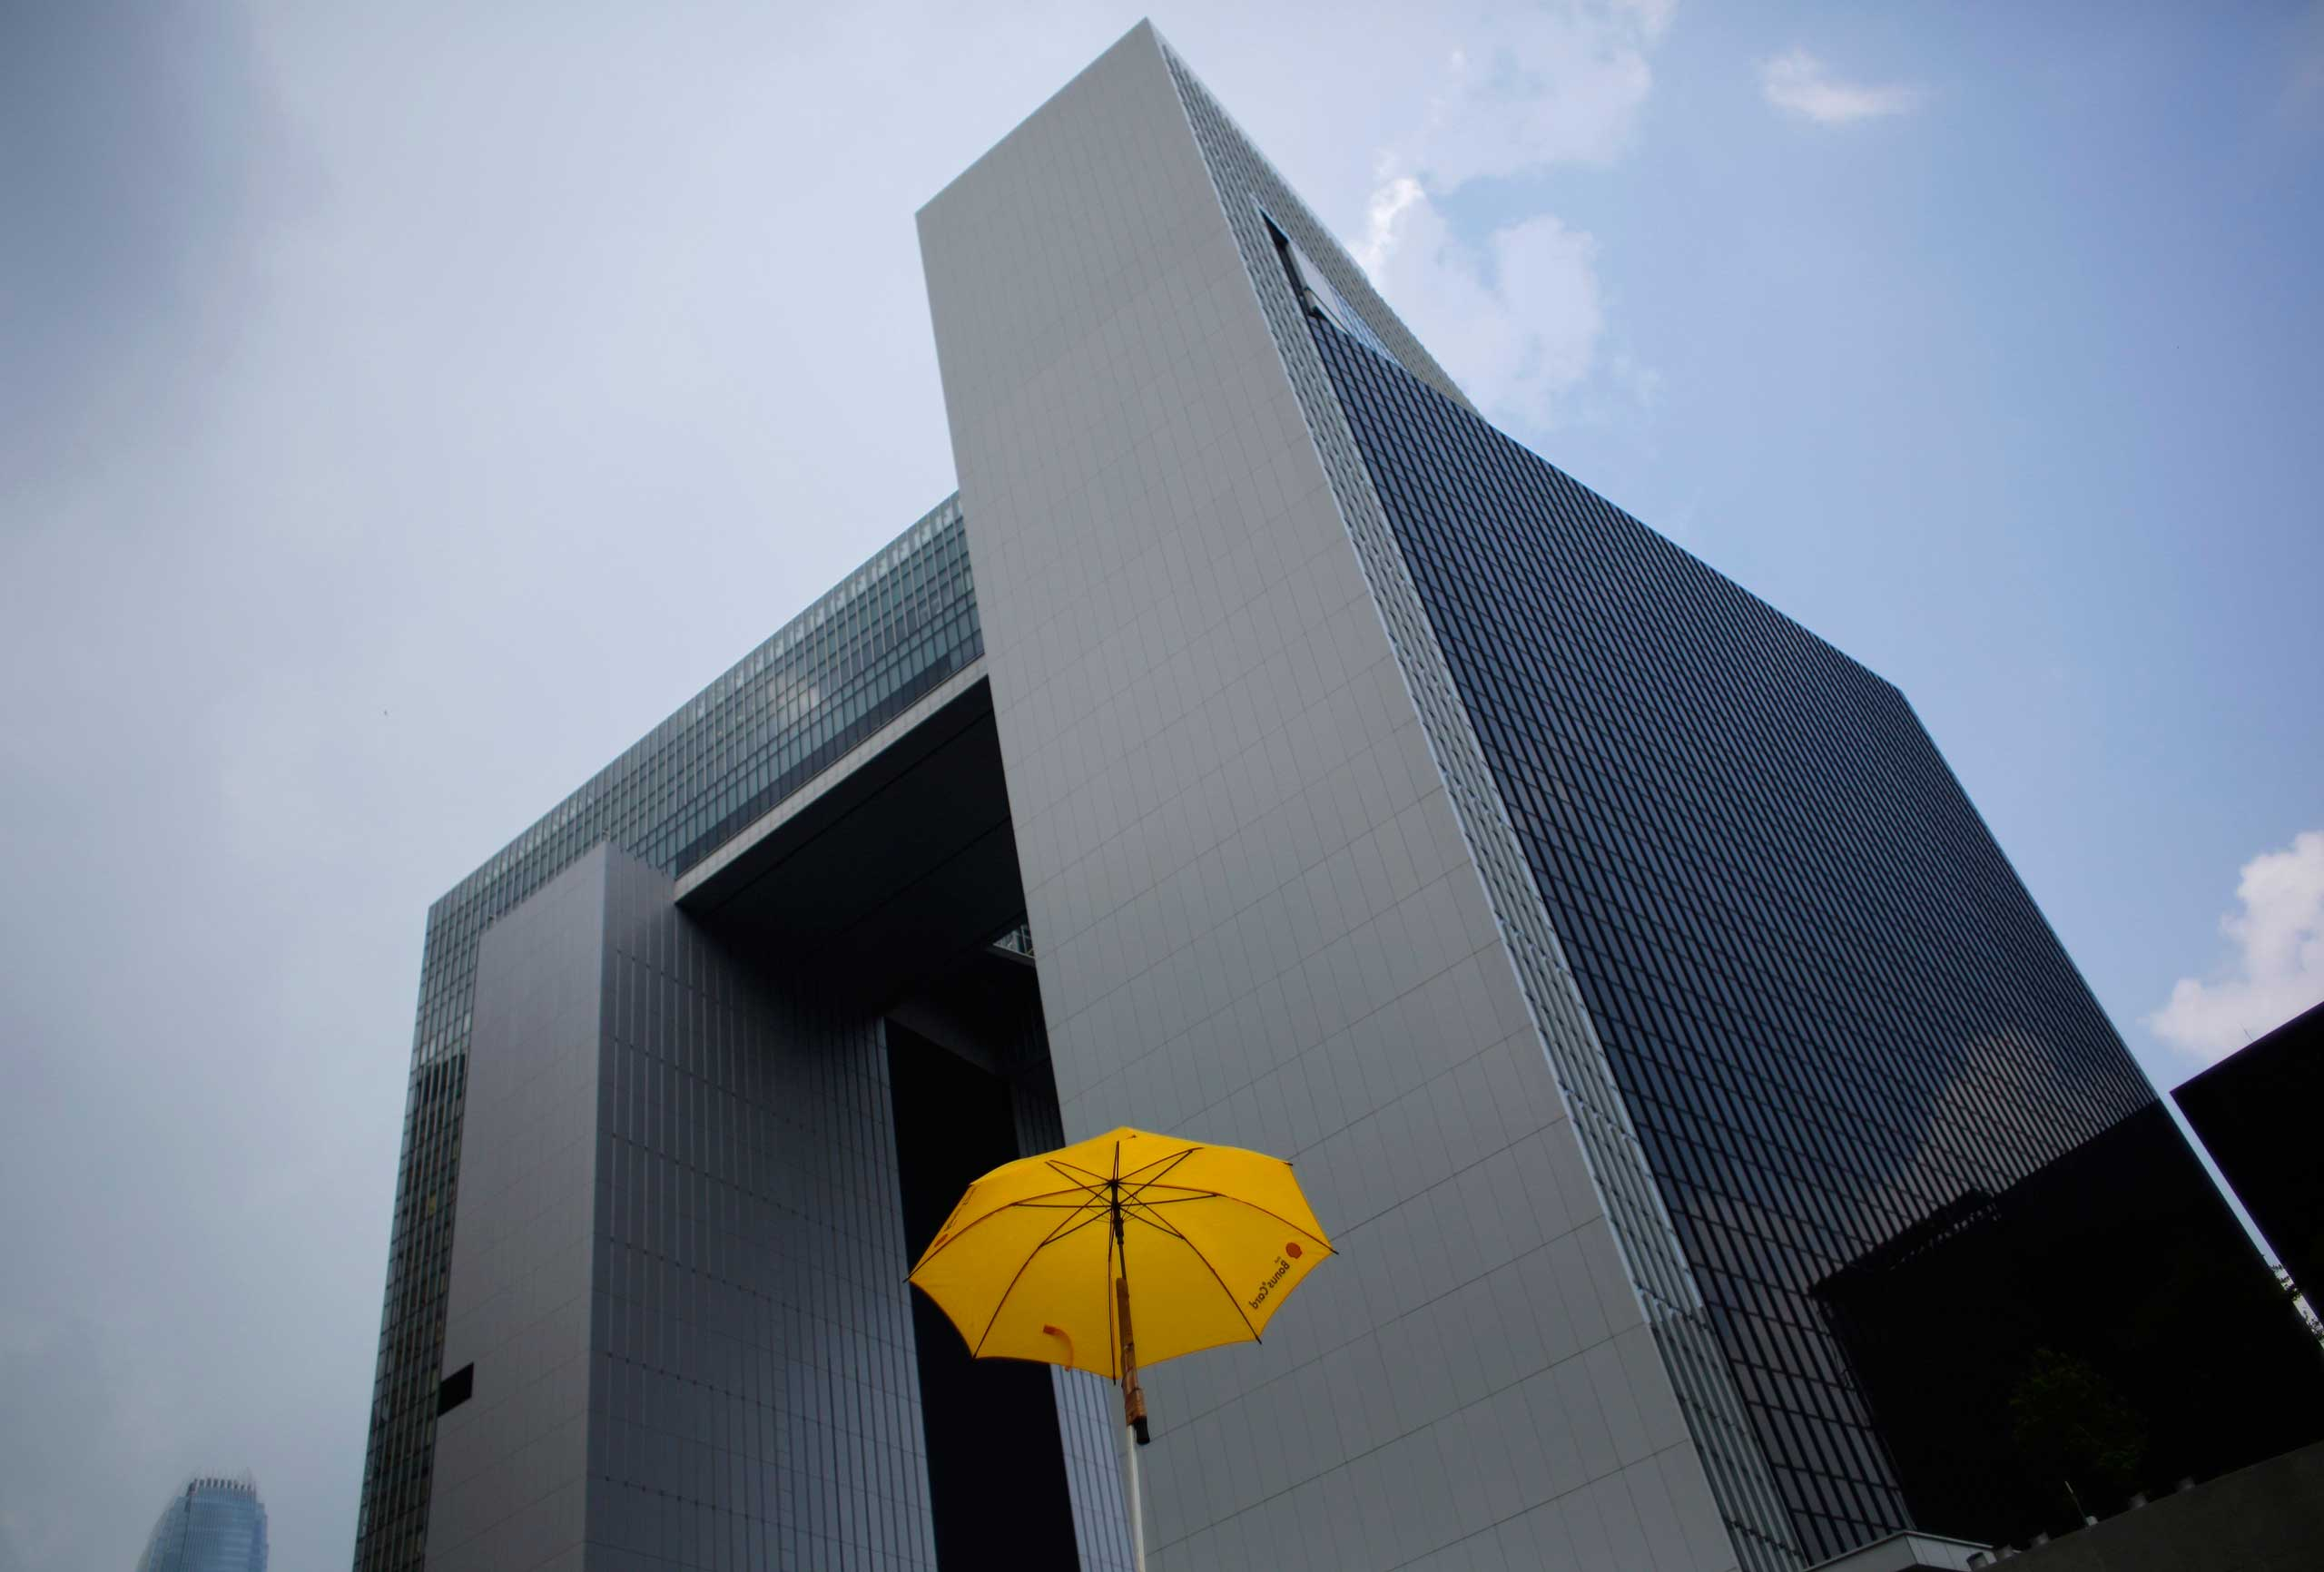 Oct. 3, 2014. A yellow umbrella, a symbol of what has been dubbed the 'Umbrella Revolution', is seen in front of the government headquarters building in Hong Kong. Hong Kong leader Leung Chun-ying agreed on Friday to open talks with pro-democracy protesters but he and his Chinese government backers made clear that they would not back down in the face of the city's worst unrest in decades.